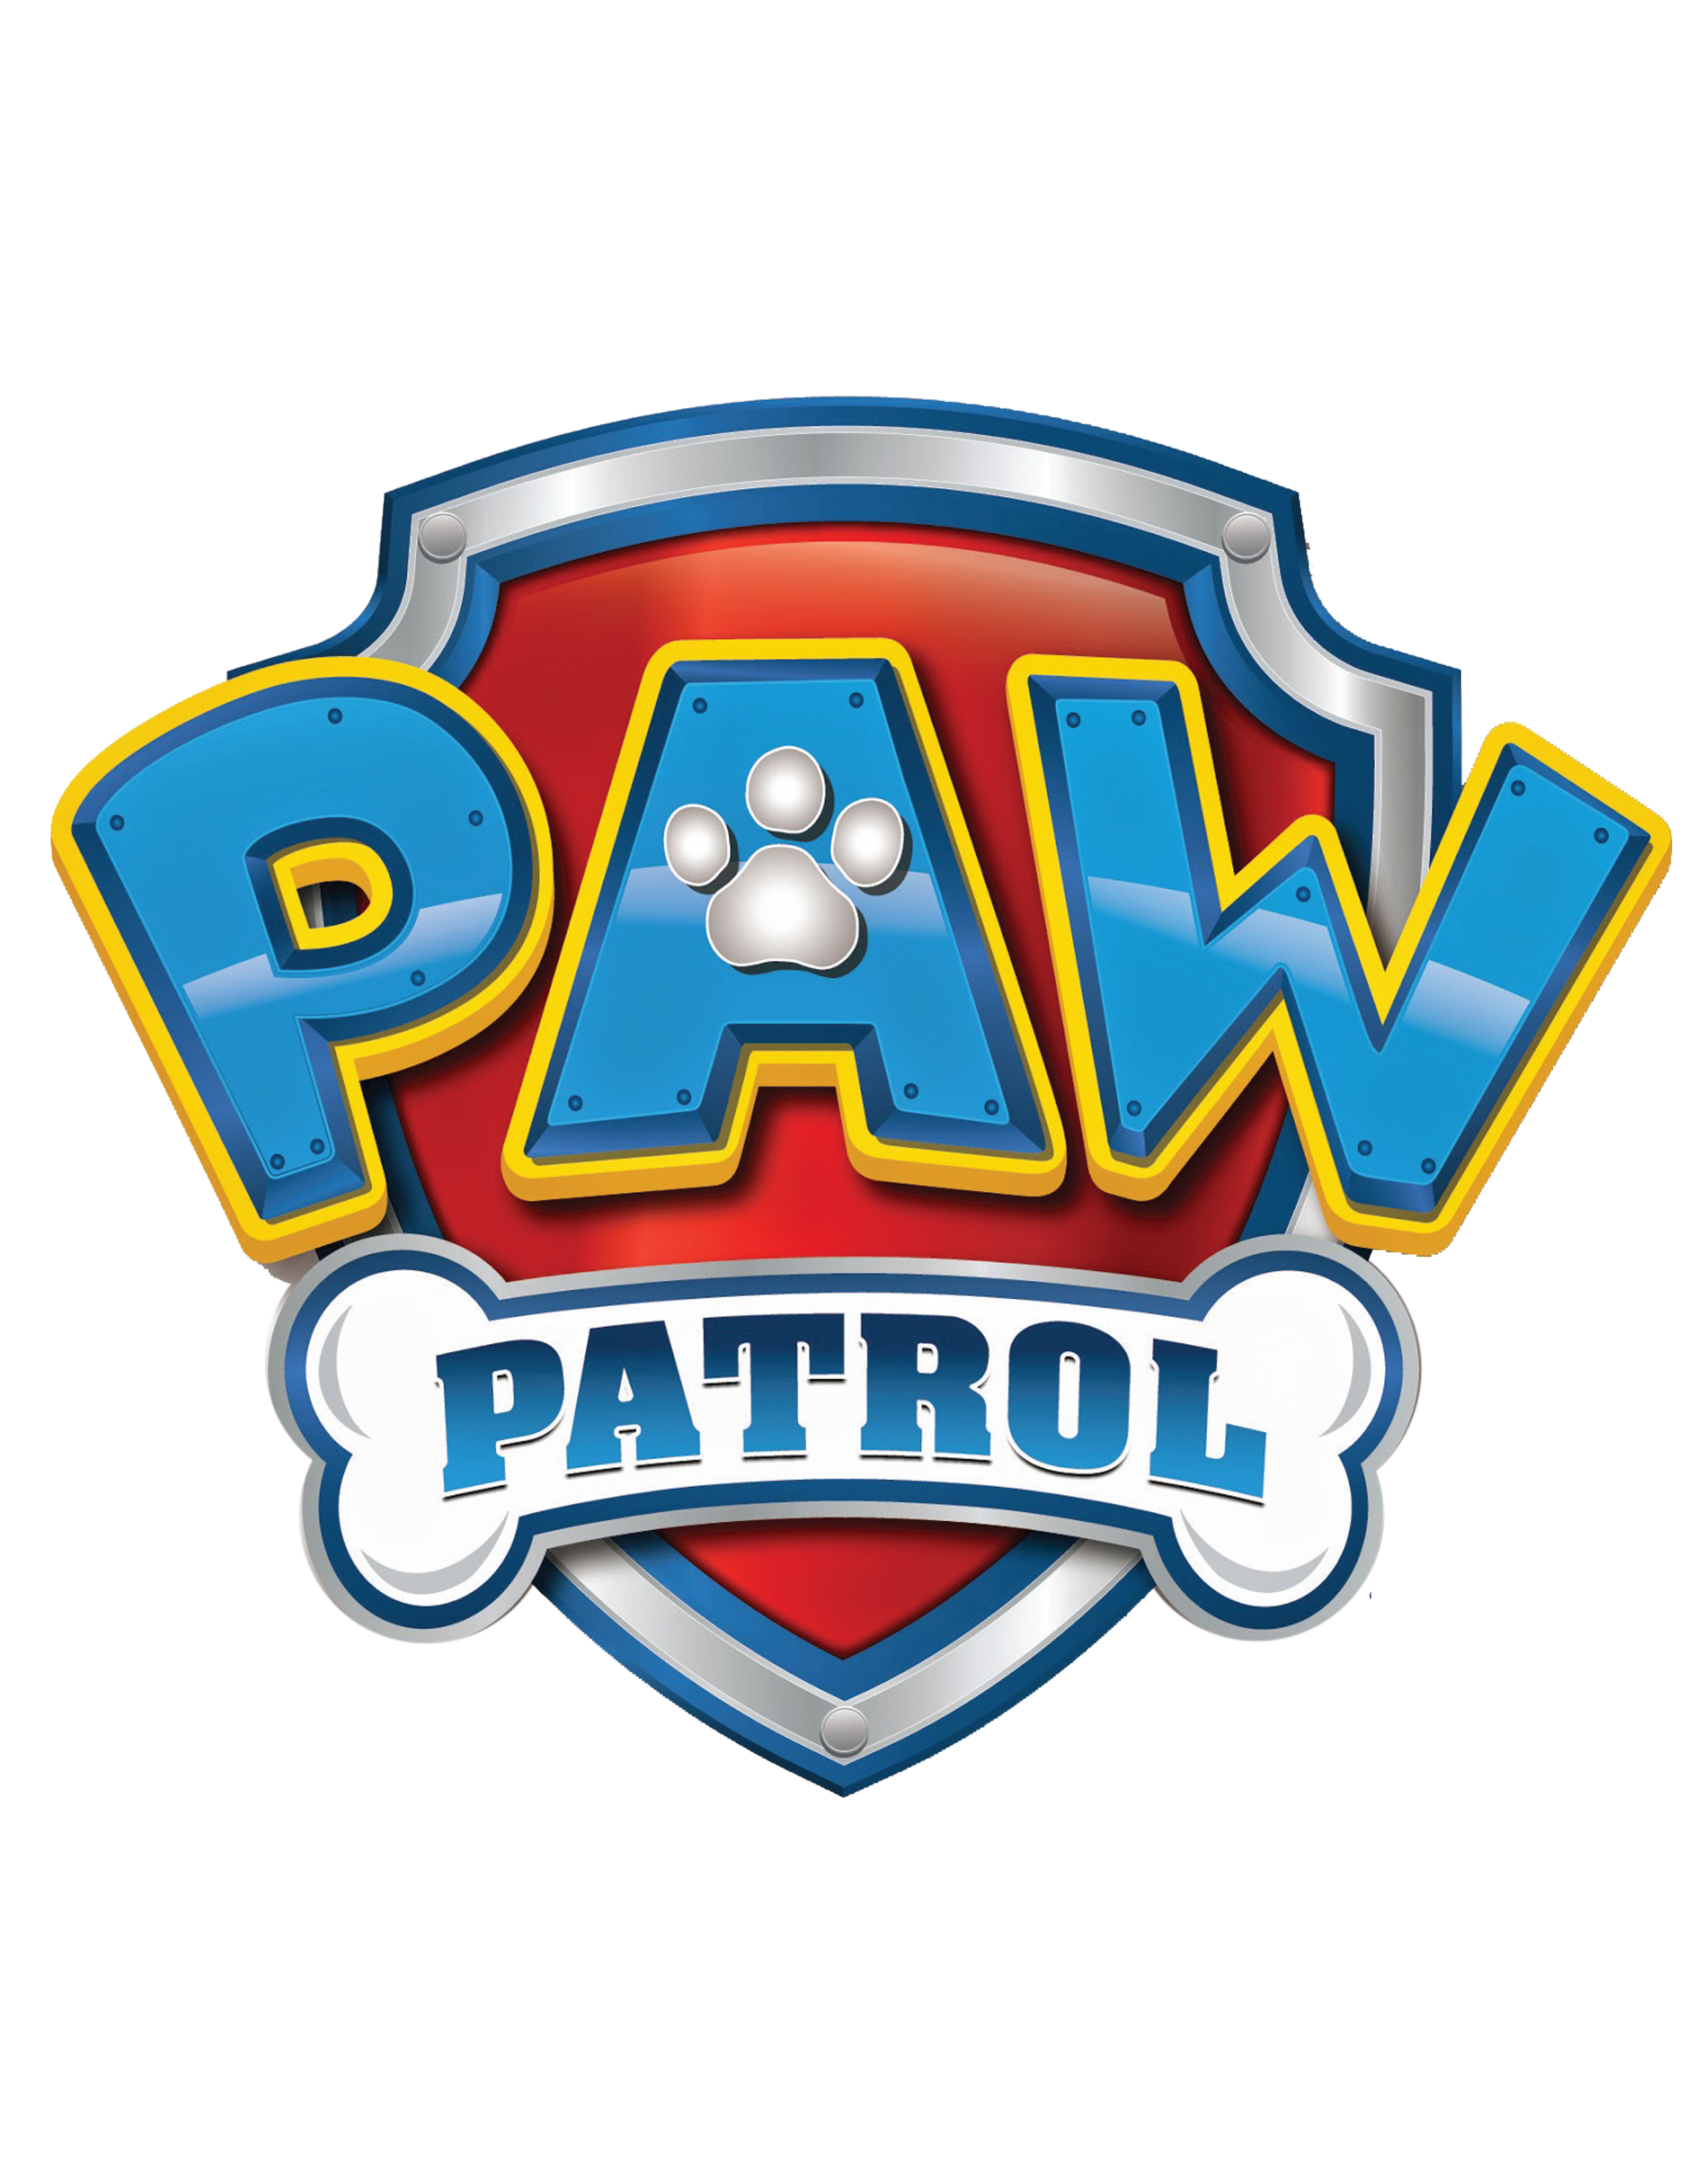 paw patrol childrens nursery wall stickers - well and